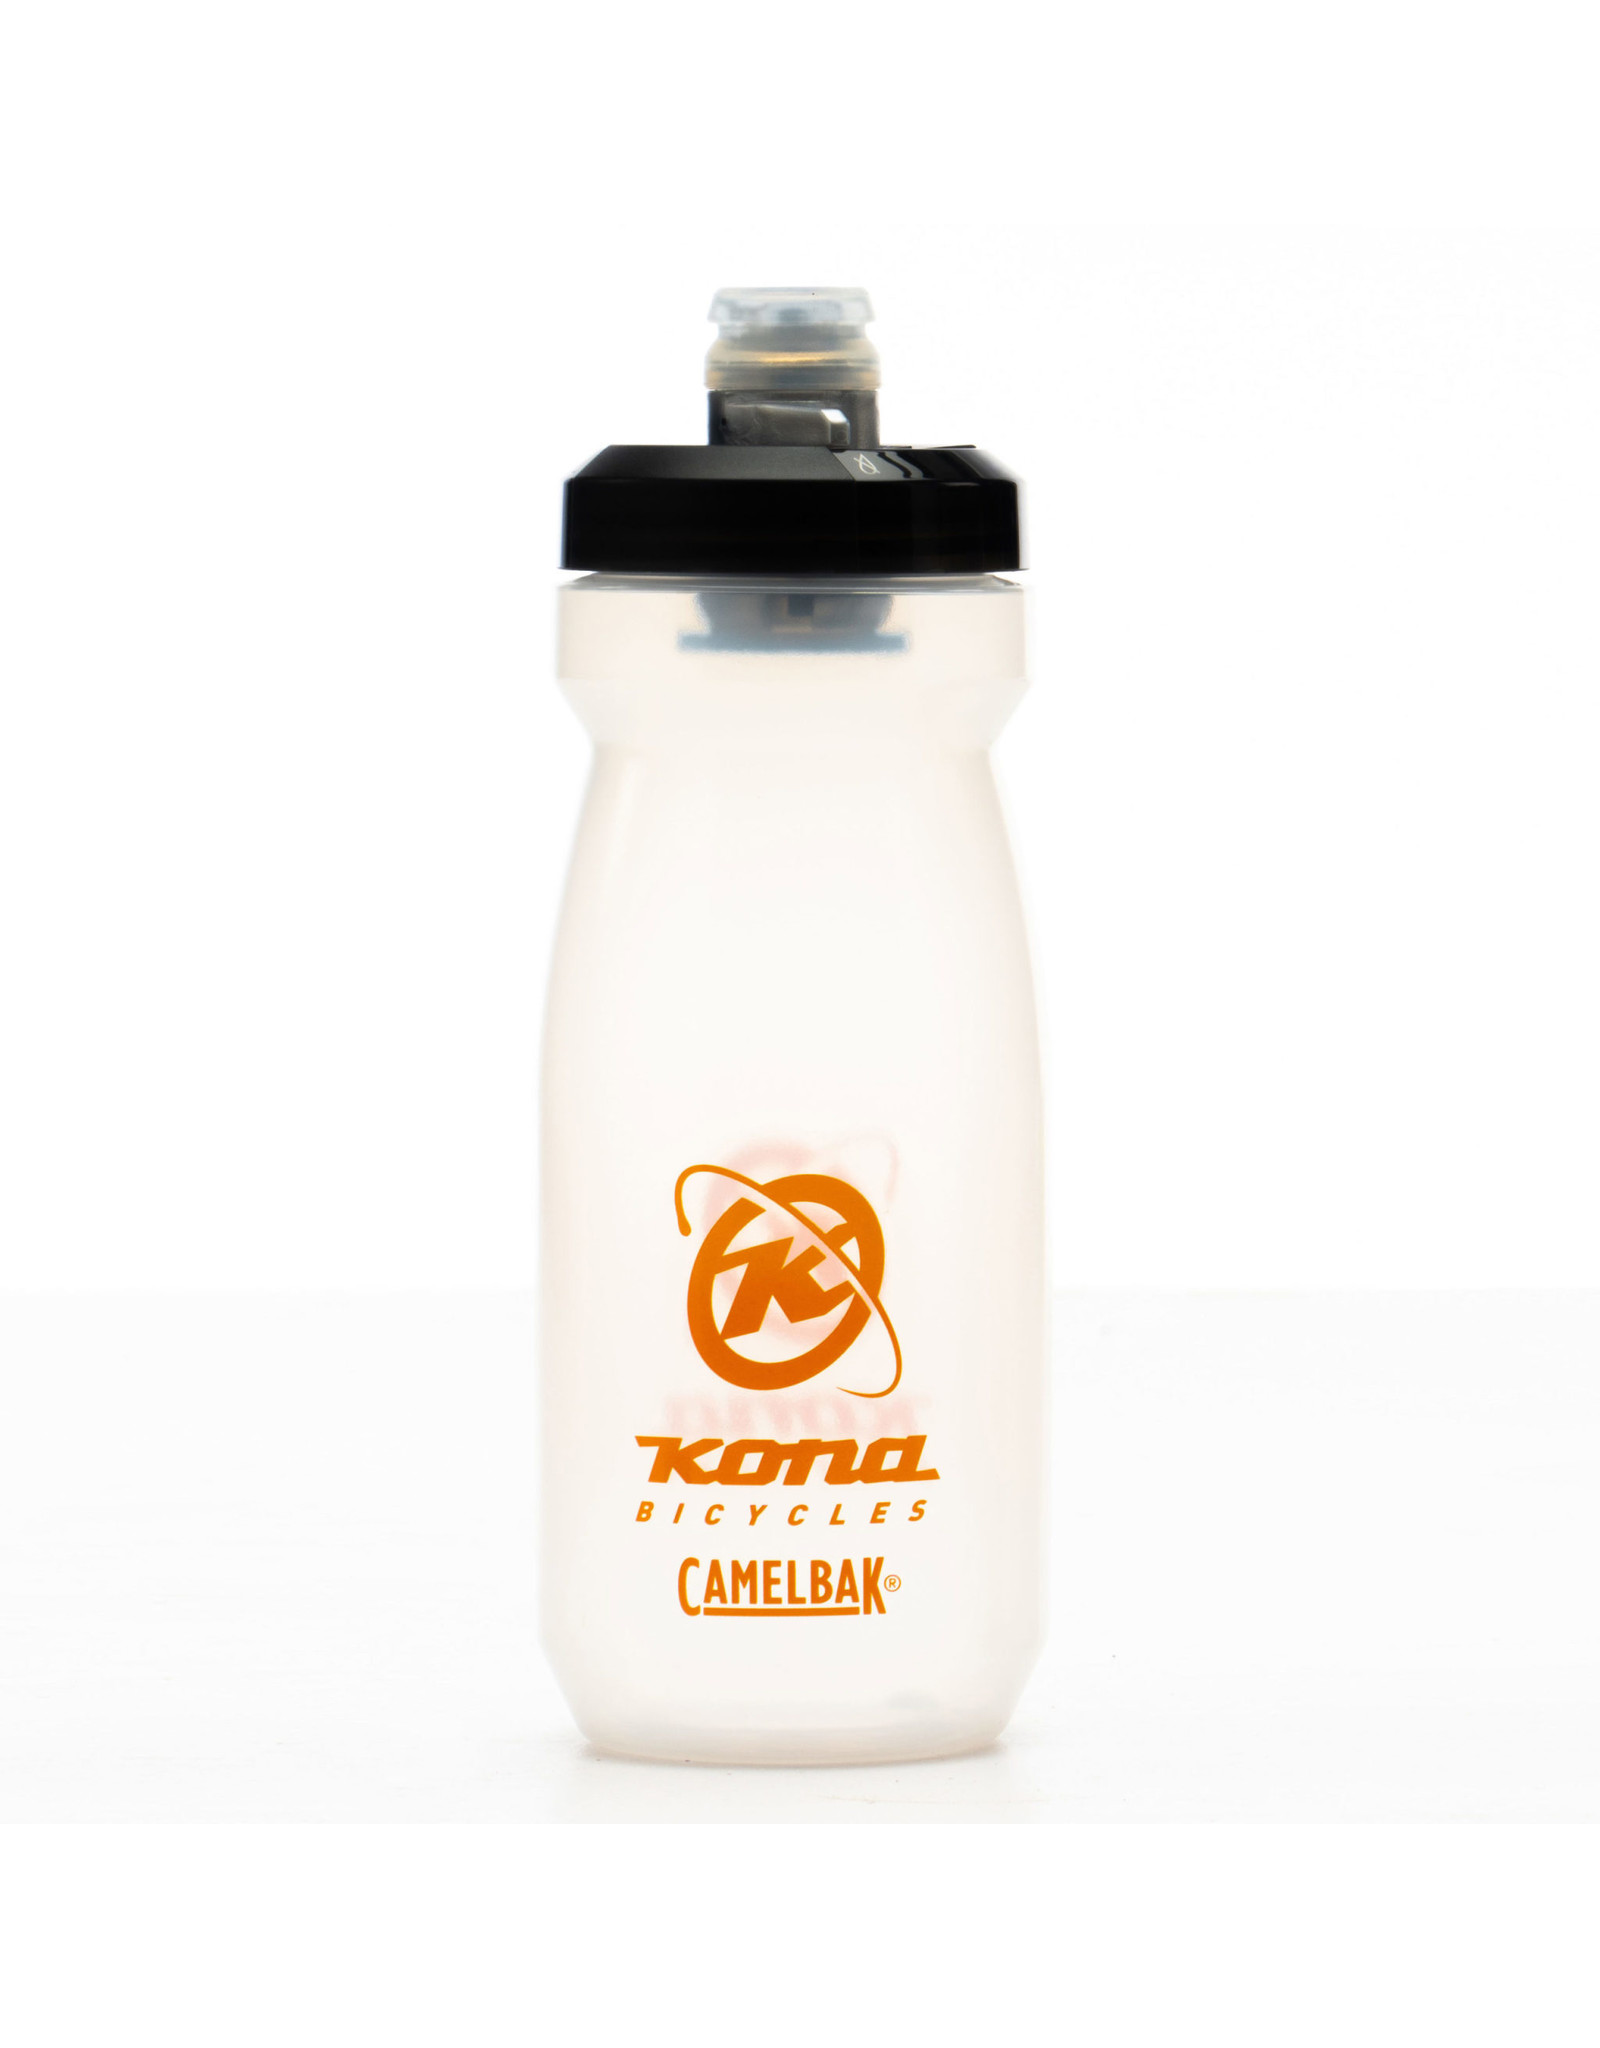 O037000 : Camelbak Orbit Water Bottle 21 OZ WHITE/ORANGE